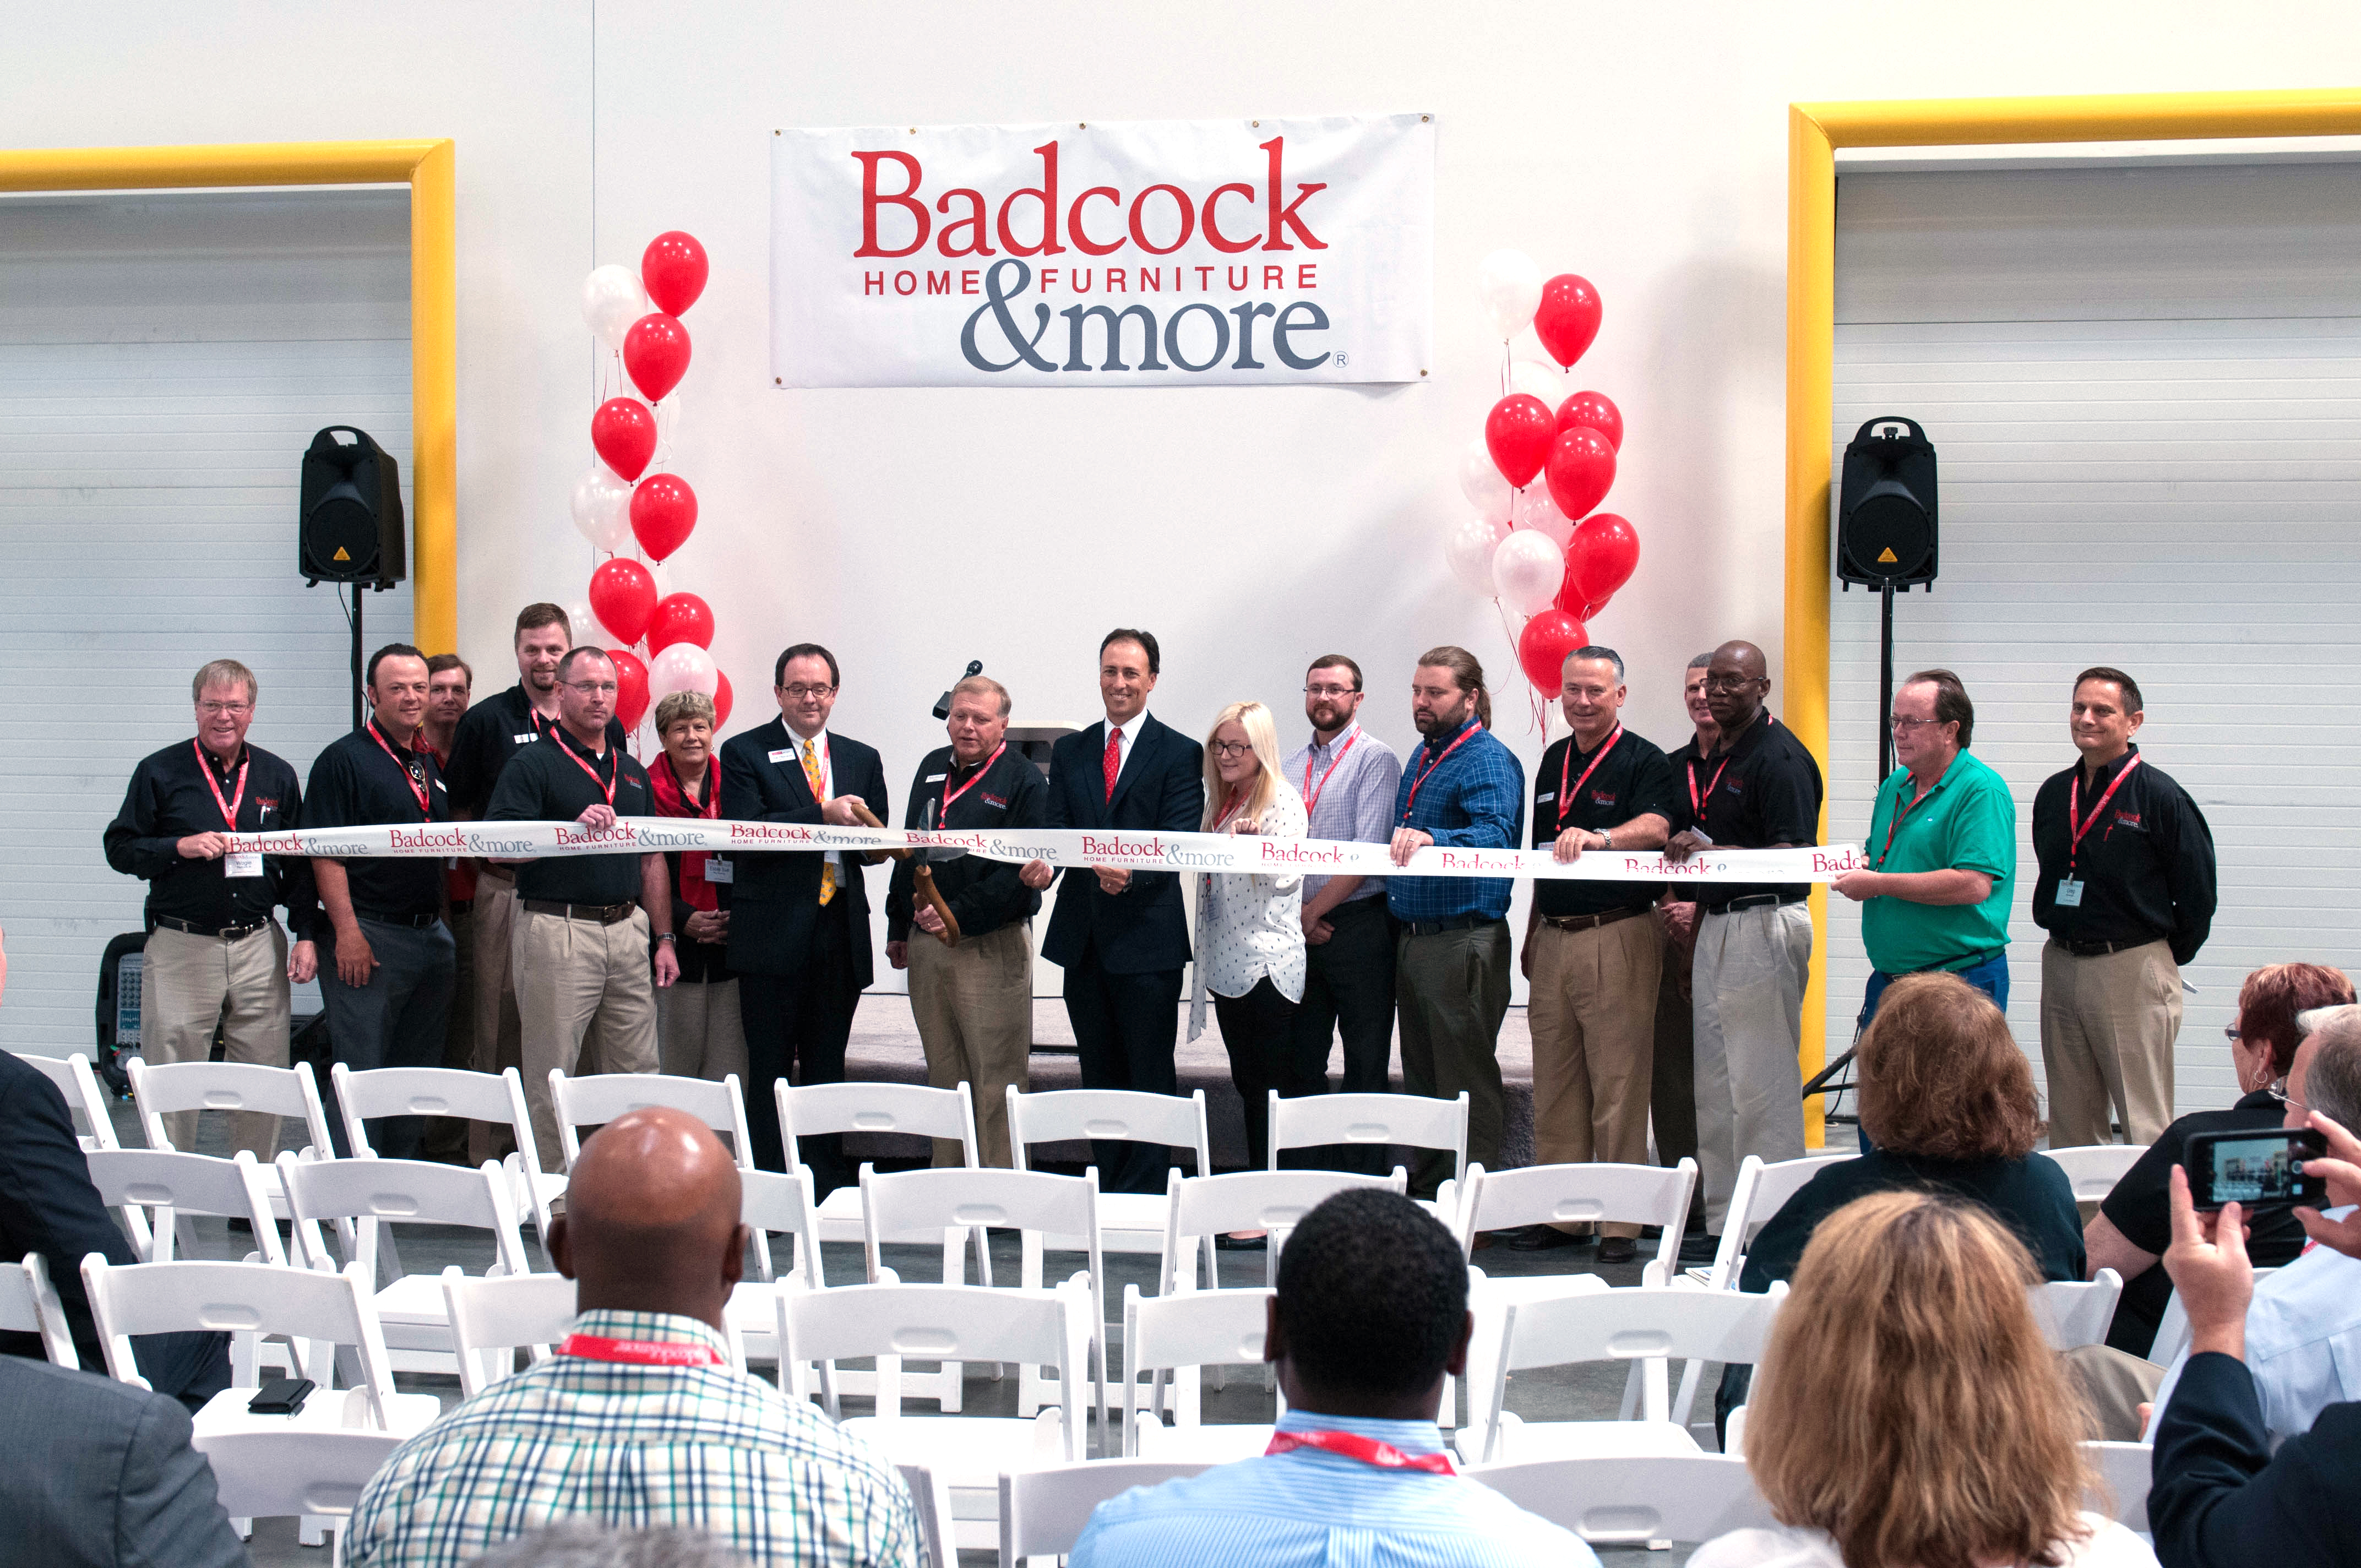 Badcock & More Home Furniture #31: W. S. Badcock Corporation Opens New Regional Distribution Center In LaGrange, GA | Business Wire